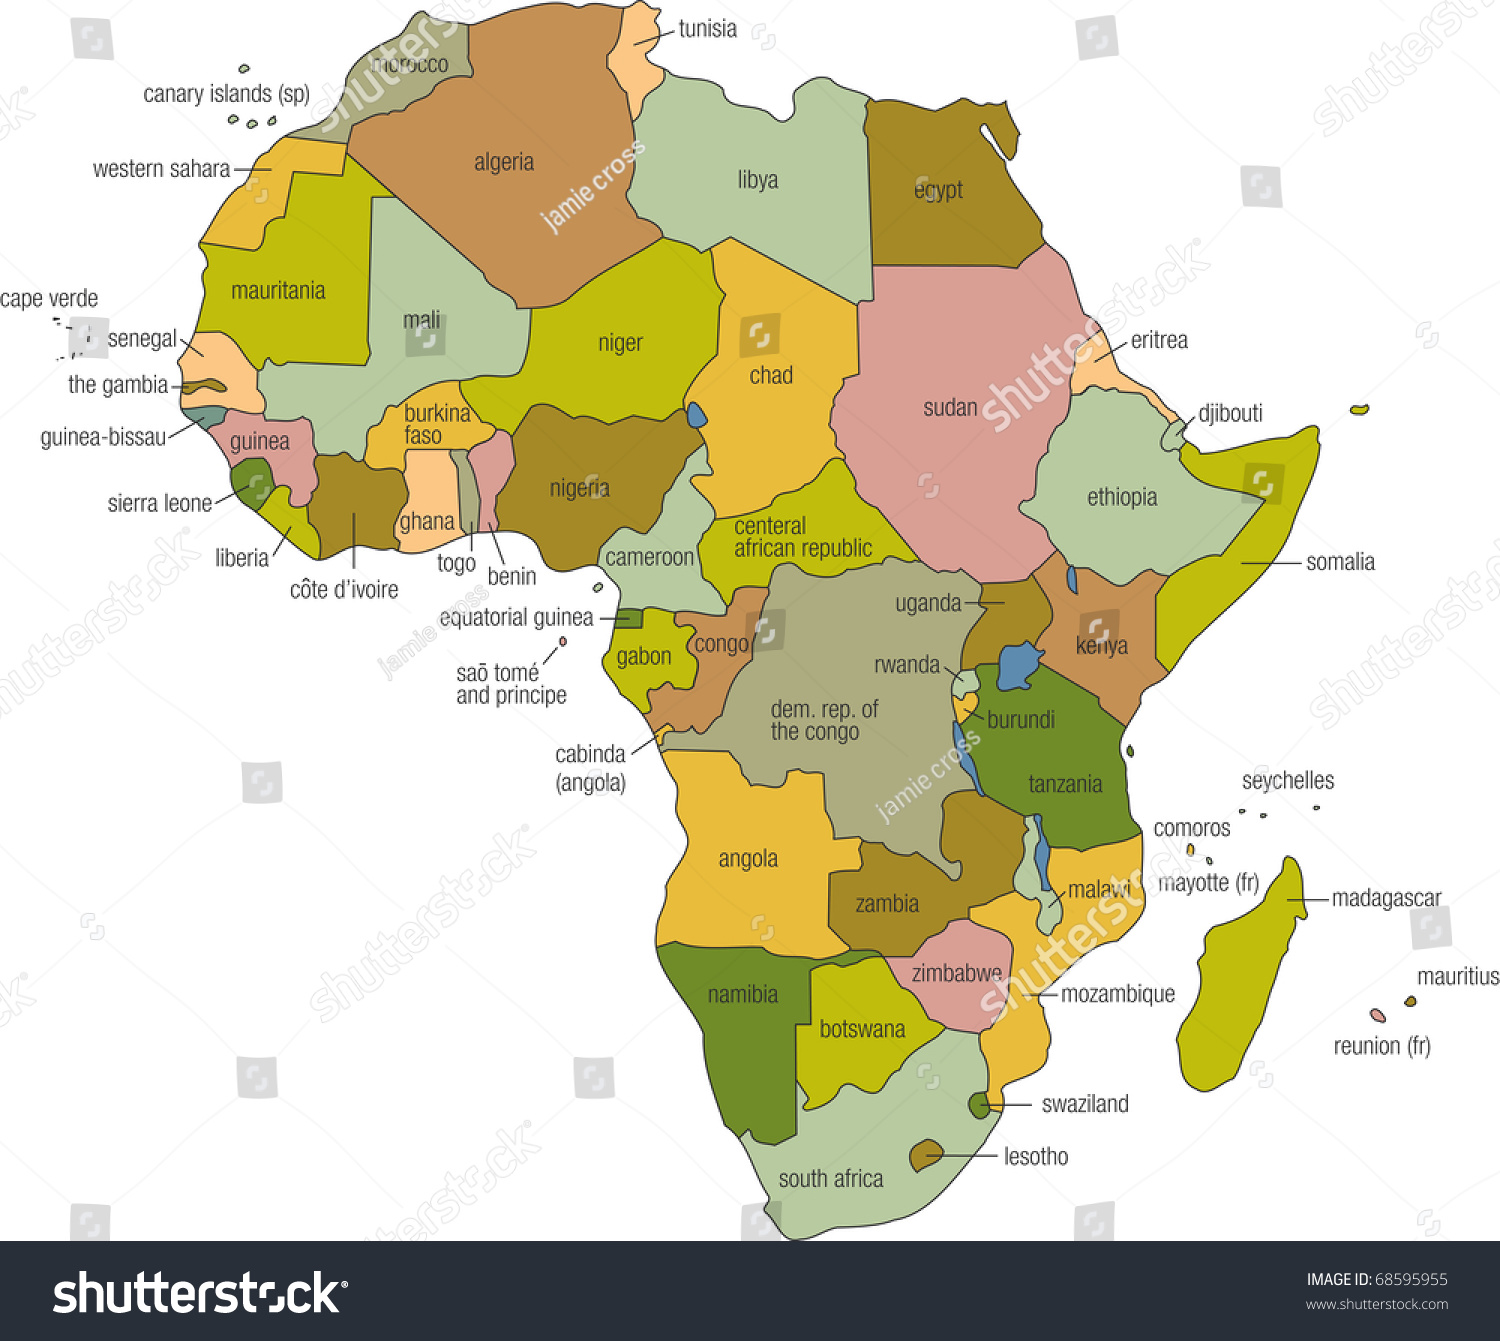 Full color map africa country names ilustracin de stock68595955 a full color map of africa with country names called out gumiabroncs Choice Image